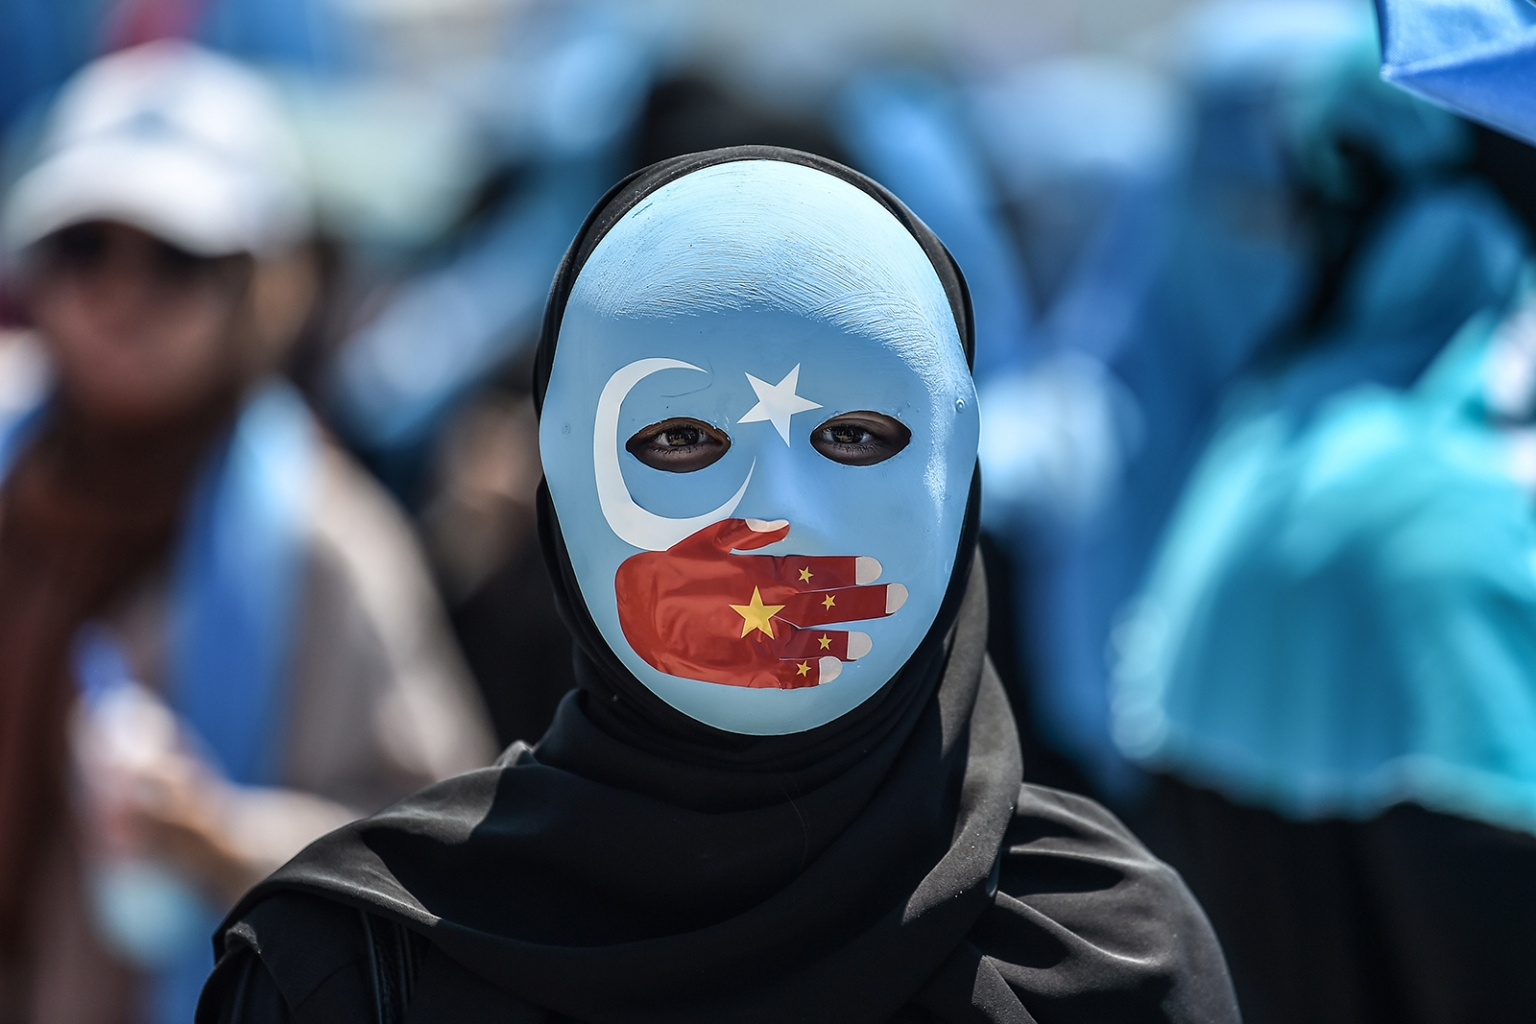 A demonstrator wearing a mask painted with the colors of the flag of East Turkestan and a hand bearing colors of the Chinese flag attends a protest in front of the Chinese consulate in Istanbul on July 5. The protest denounced China's treatment of ethnic Uighur Muslims during a series of riot between Uighurs and Han people in July 2009 in Urumqi, the capital of China's autonomous Xinjiang region, in which nearly 200 people died. OZAN KOSE/AFP/GETTY IMAGES